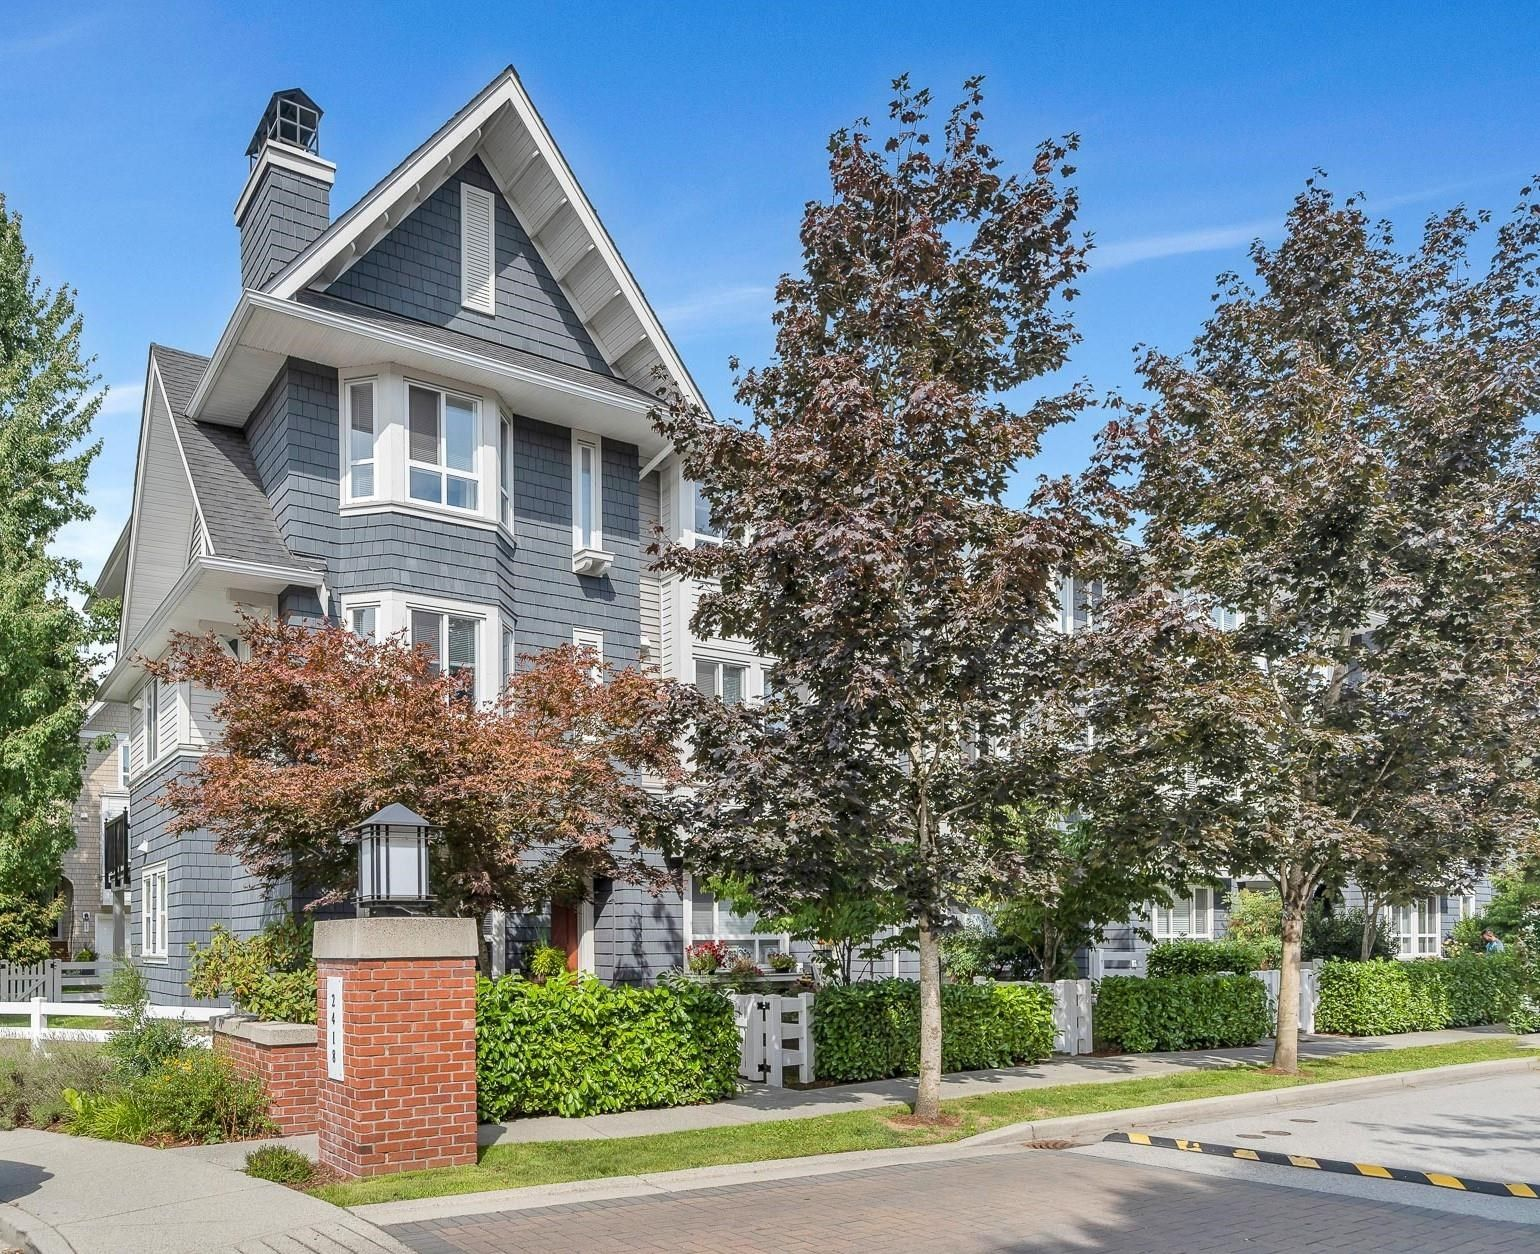 """Main Photo: 41 2418 AVON Place in Port Coquitlam: Riverwood Townhouse for sale in """"LINKS"""" : MLS®# R2612468"""